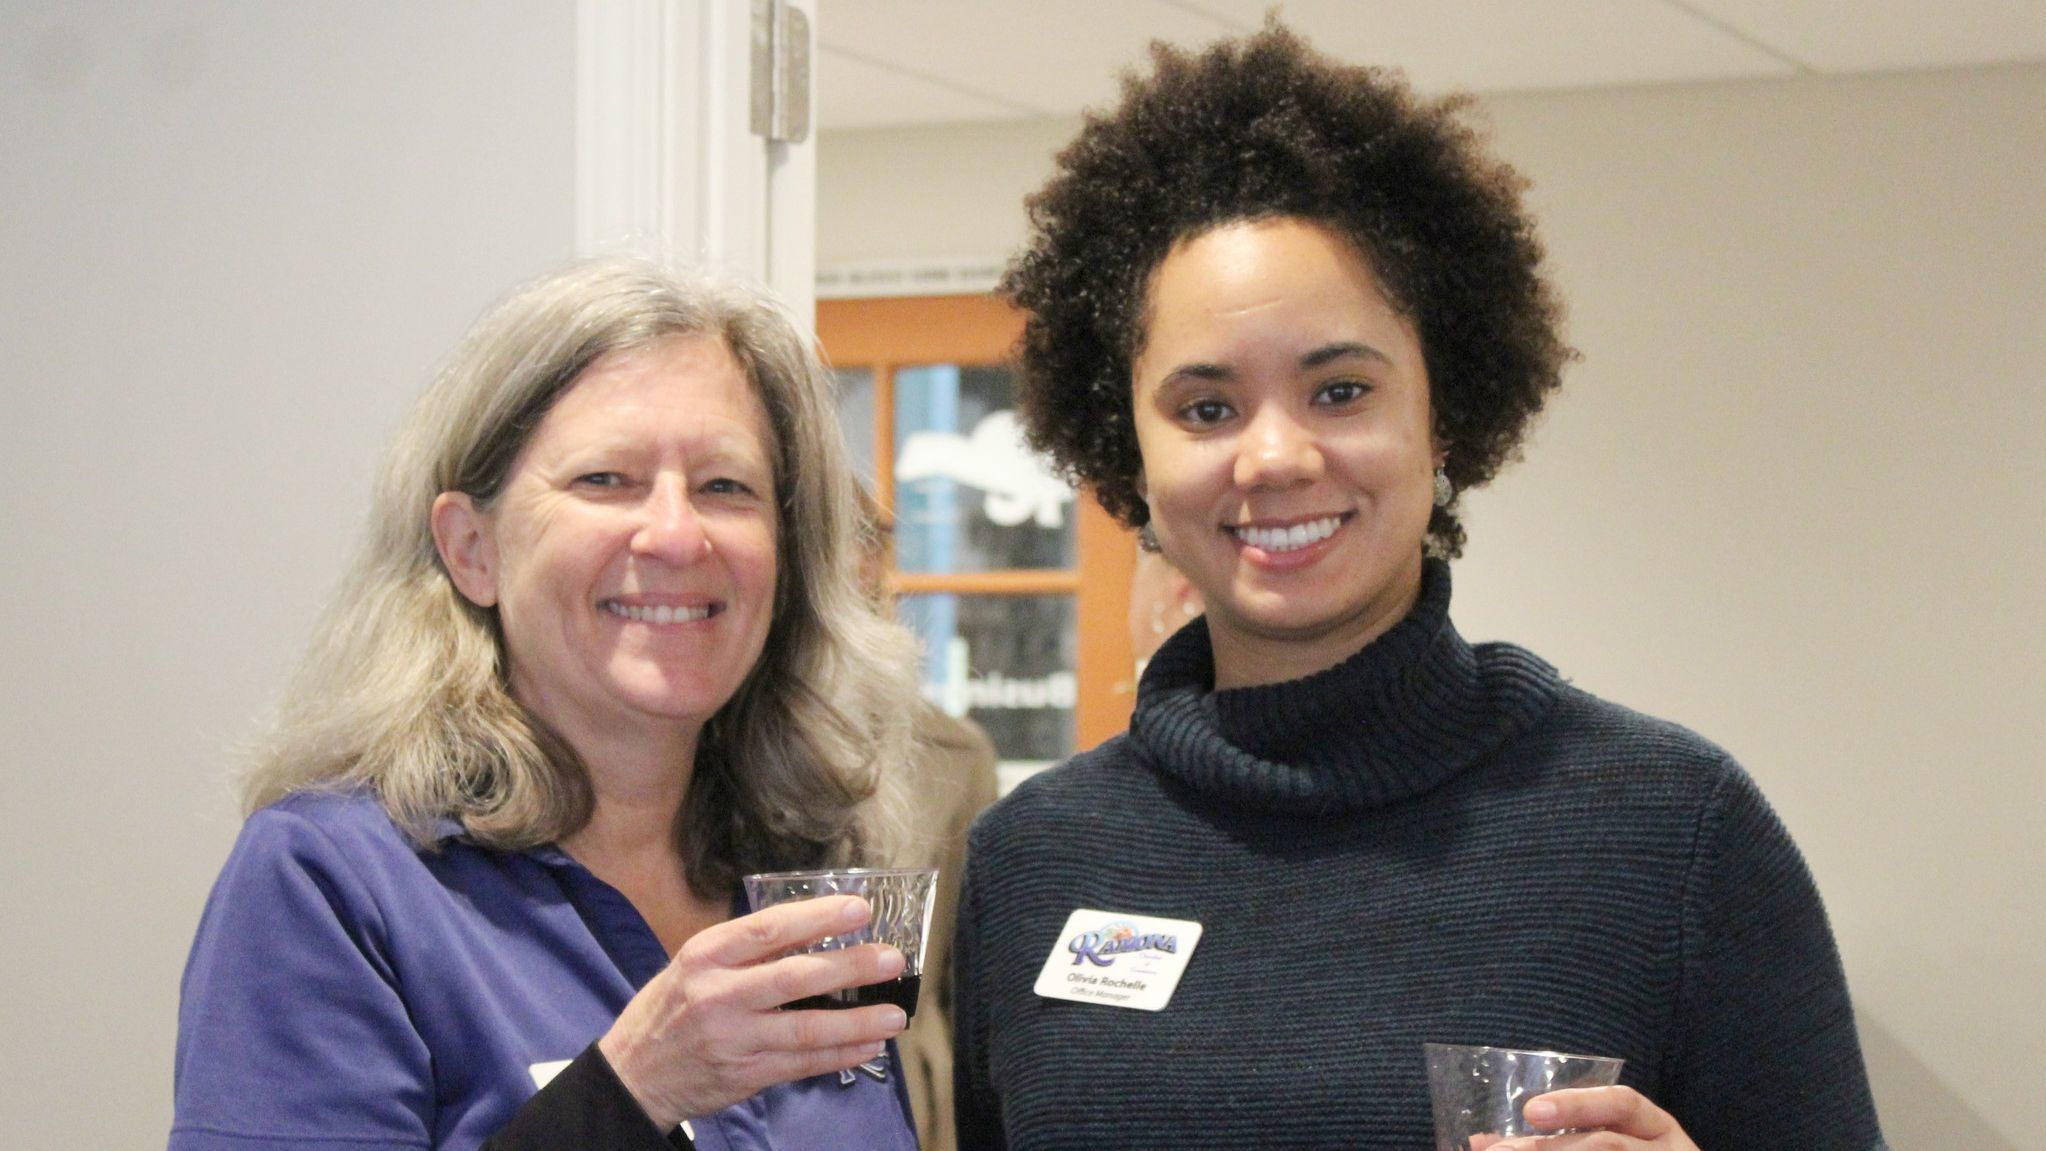 Ramona Chamber Administrative Assistant Michelle Sund, left, and Office Manager Olivia Rochelle greet guests at the open house.